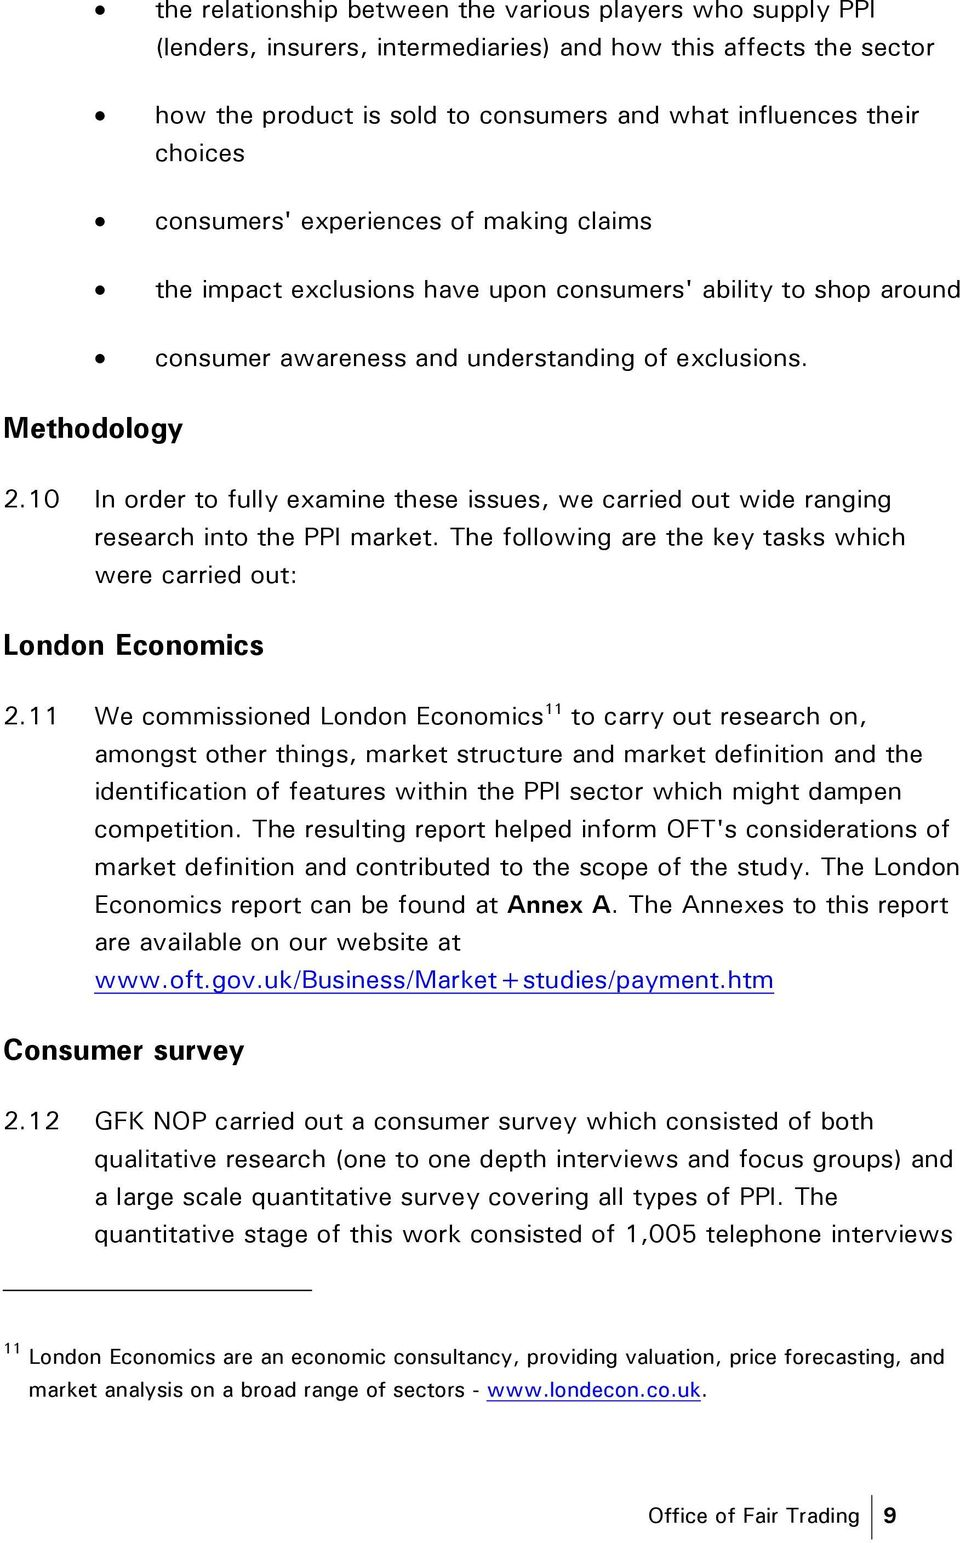 10 In order to fully examine these issues, we carried out wide ranging research into the PPI market. The following are the key tasks which were carried out: London Economics 2.